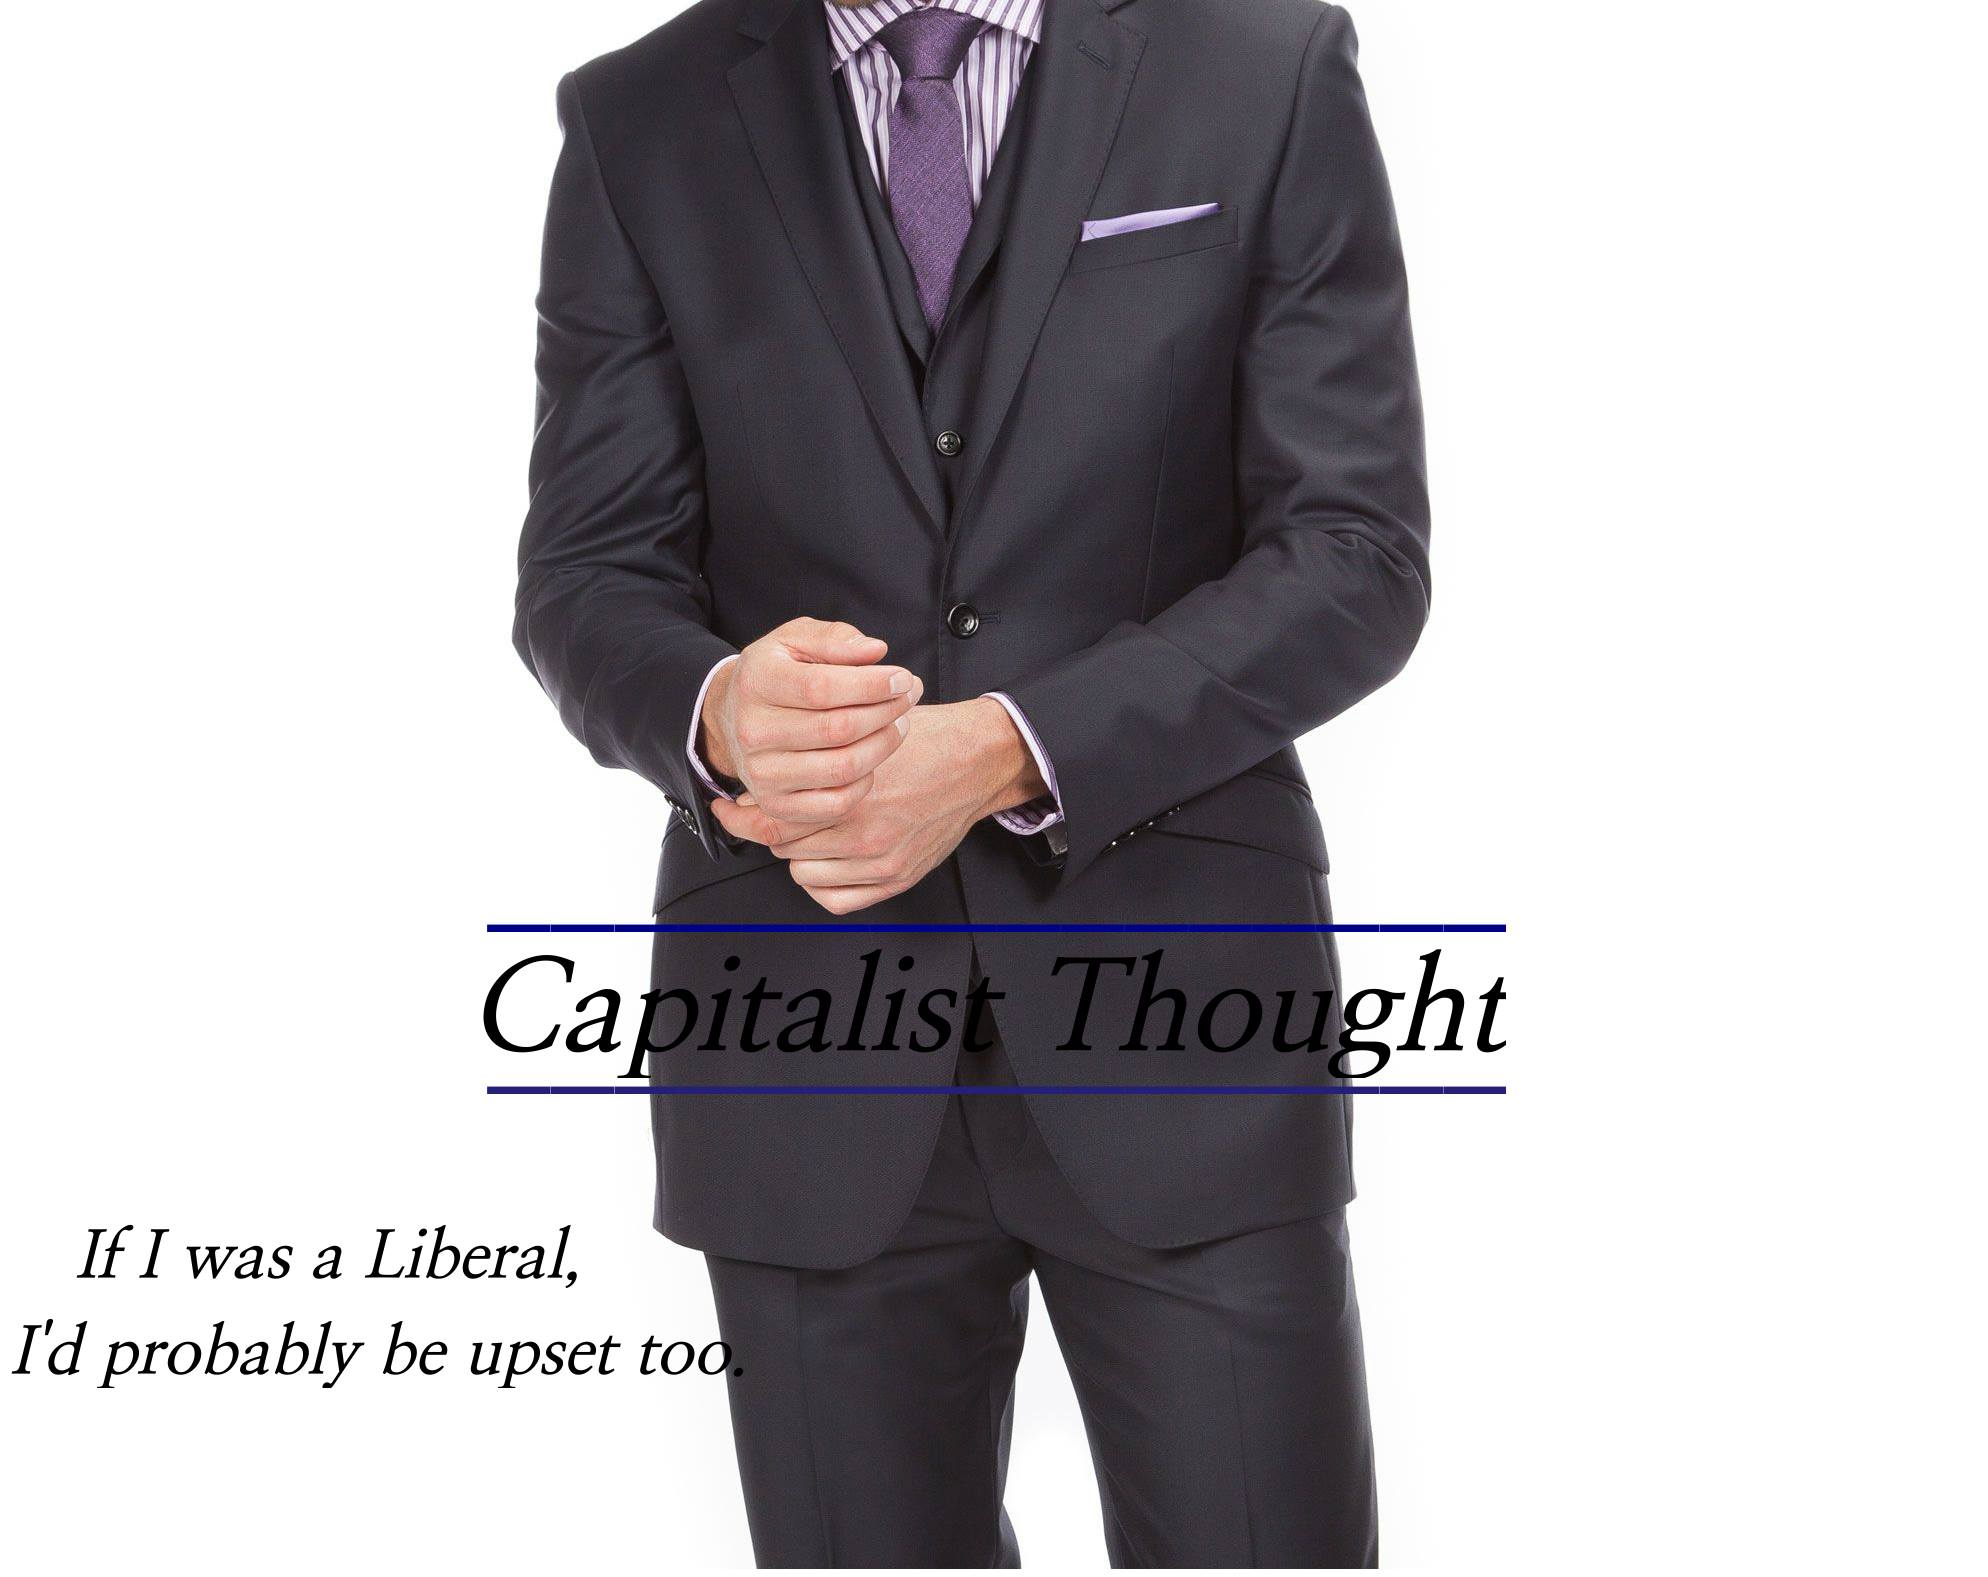 capitalist-thought-if-i-was-a-liberal-id-probably-be-upset-too